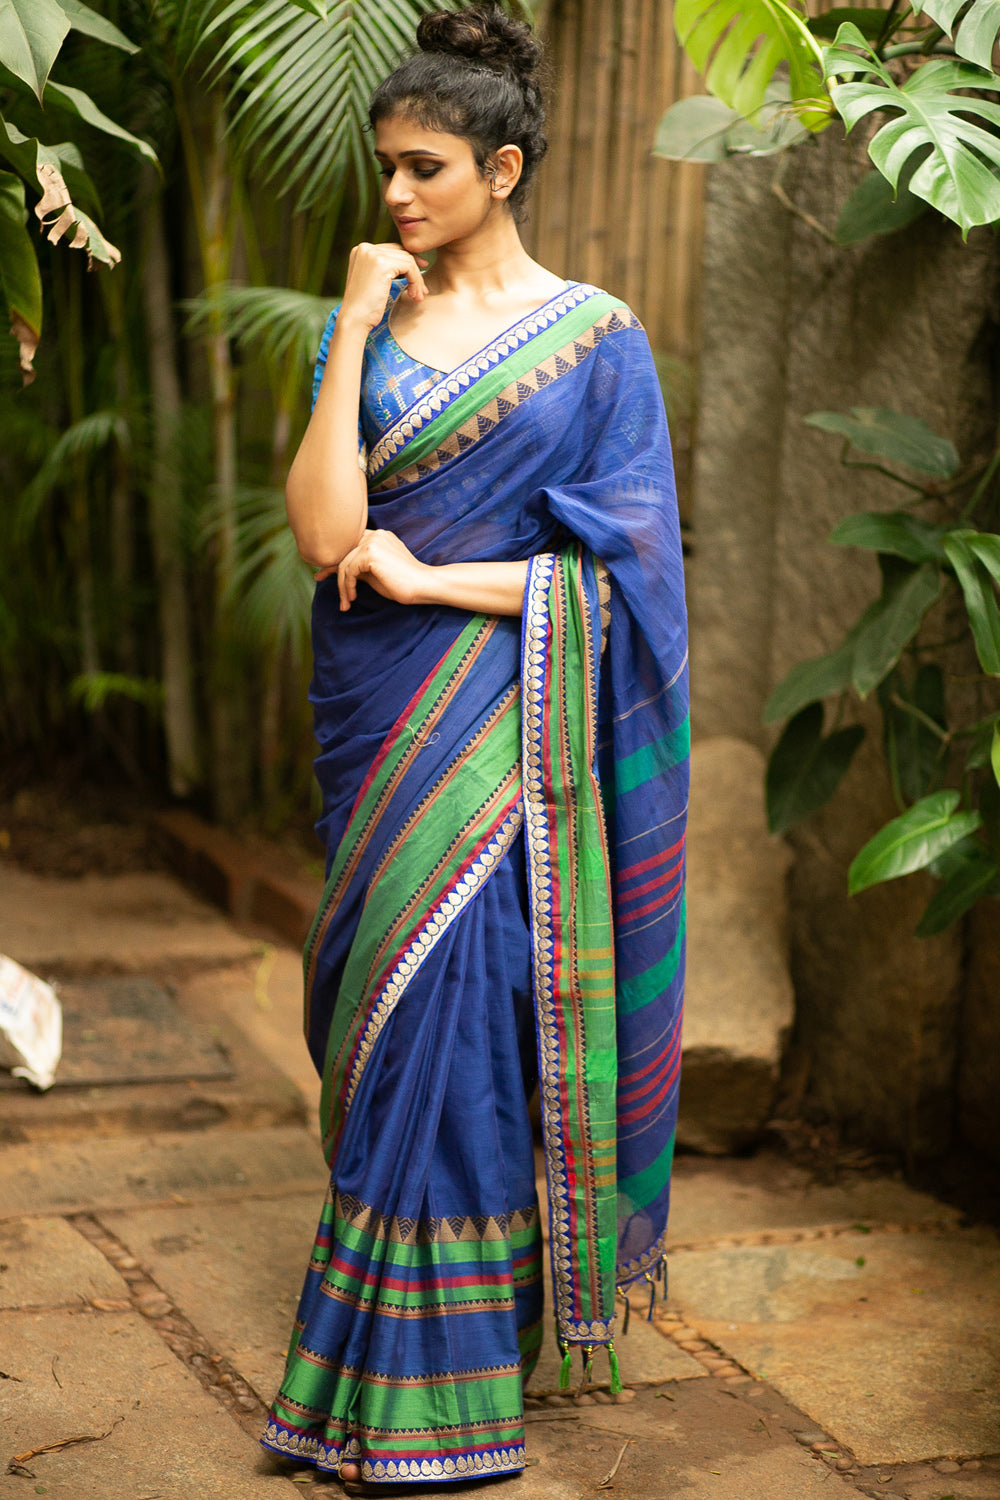 Prussian blue Naranyanpet handloom cotton saree with green and blue-gold zari border - House of Blouse